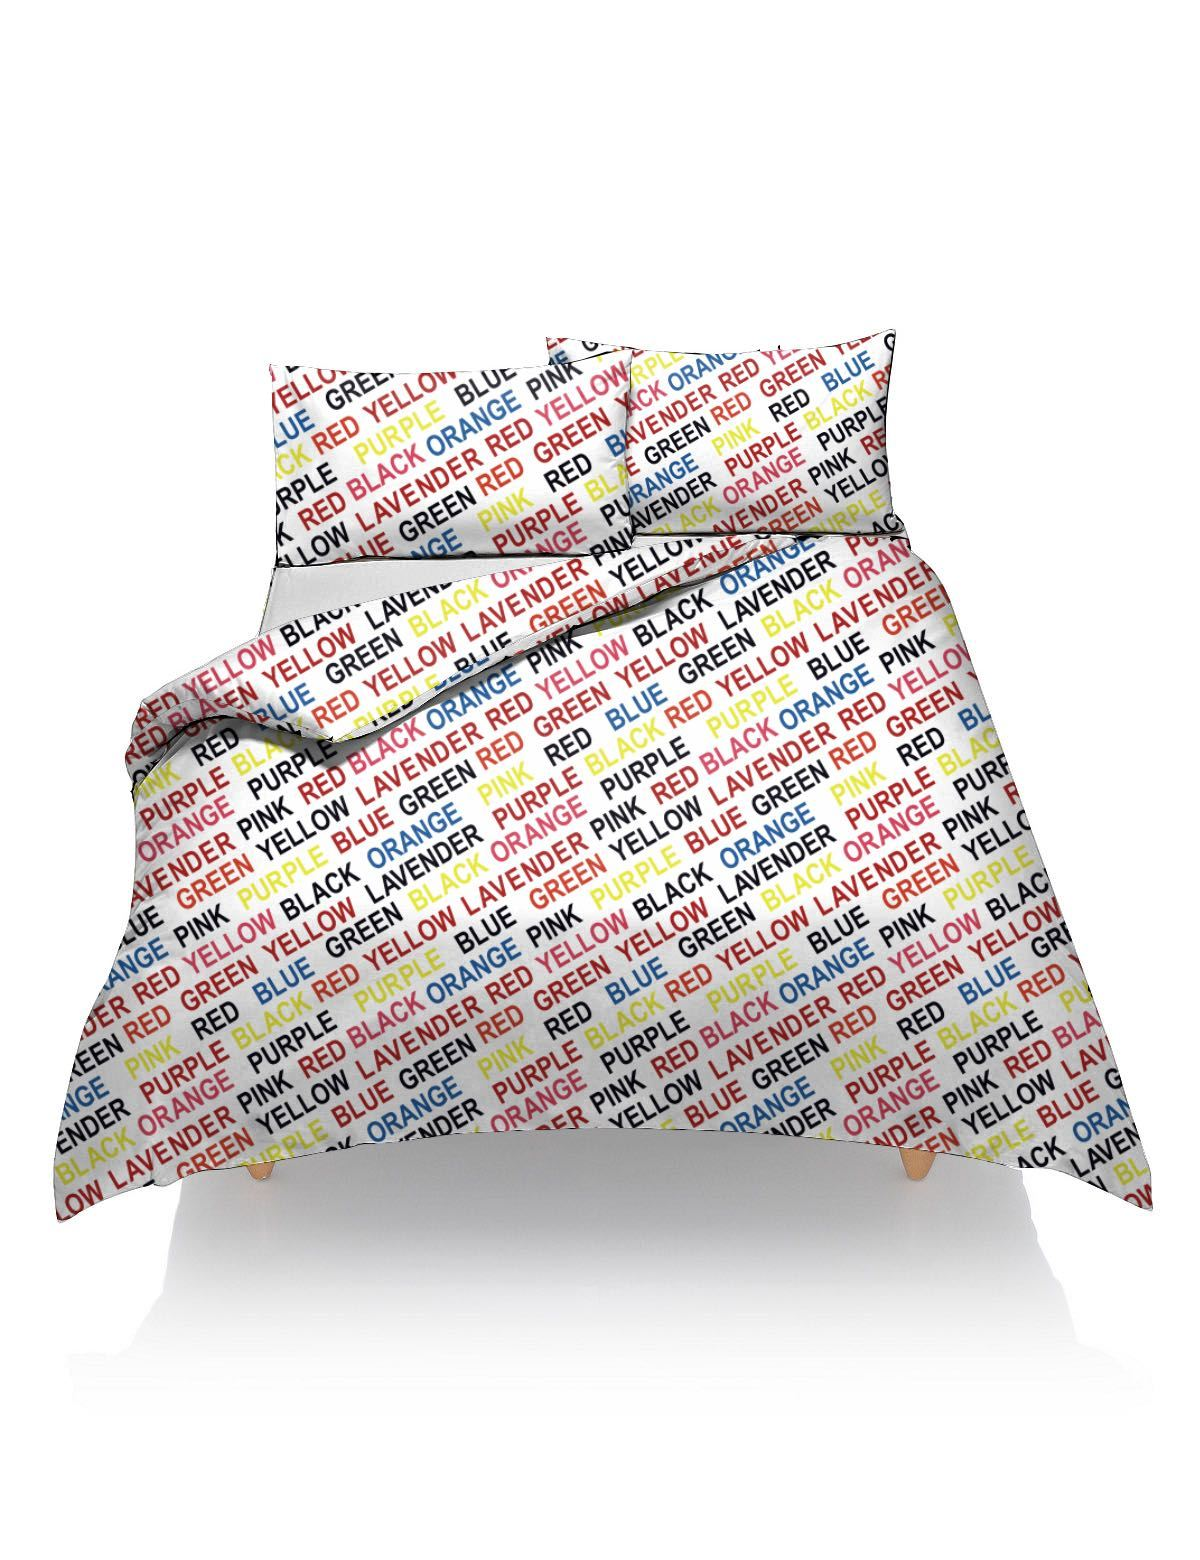 Fancy duvet cover with pillow case printed quilt bedding sets fancy duvet cover with pillow case printed quilt urtaz Image collections